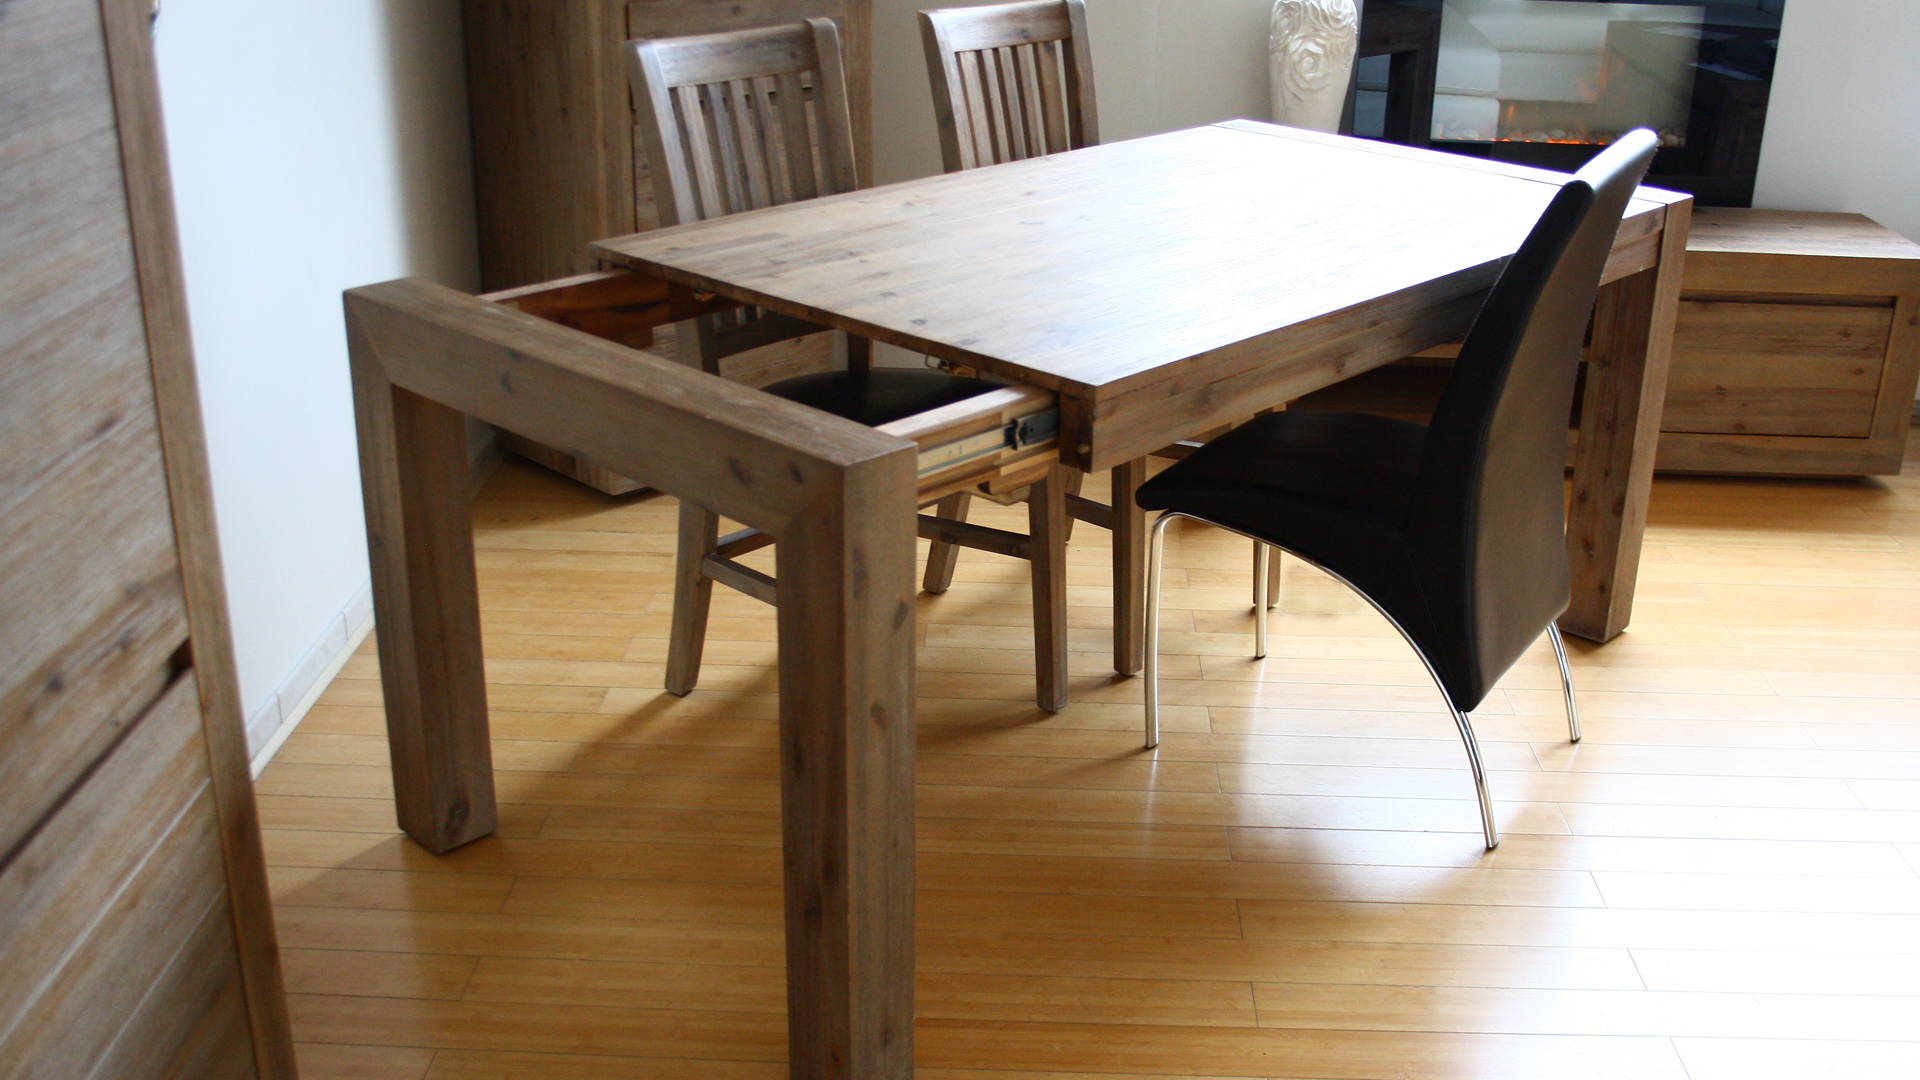 Table de salle a manger moderne bois for Table a manger bois